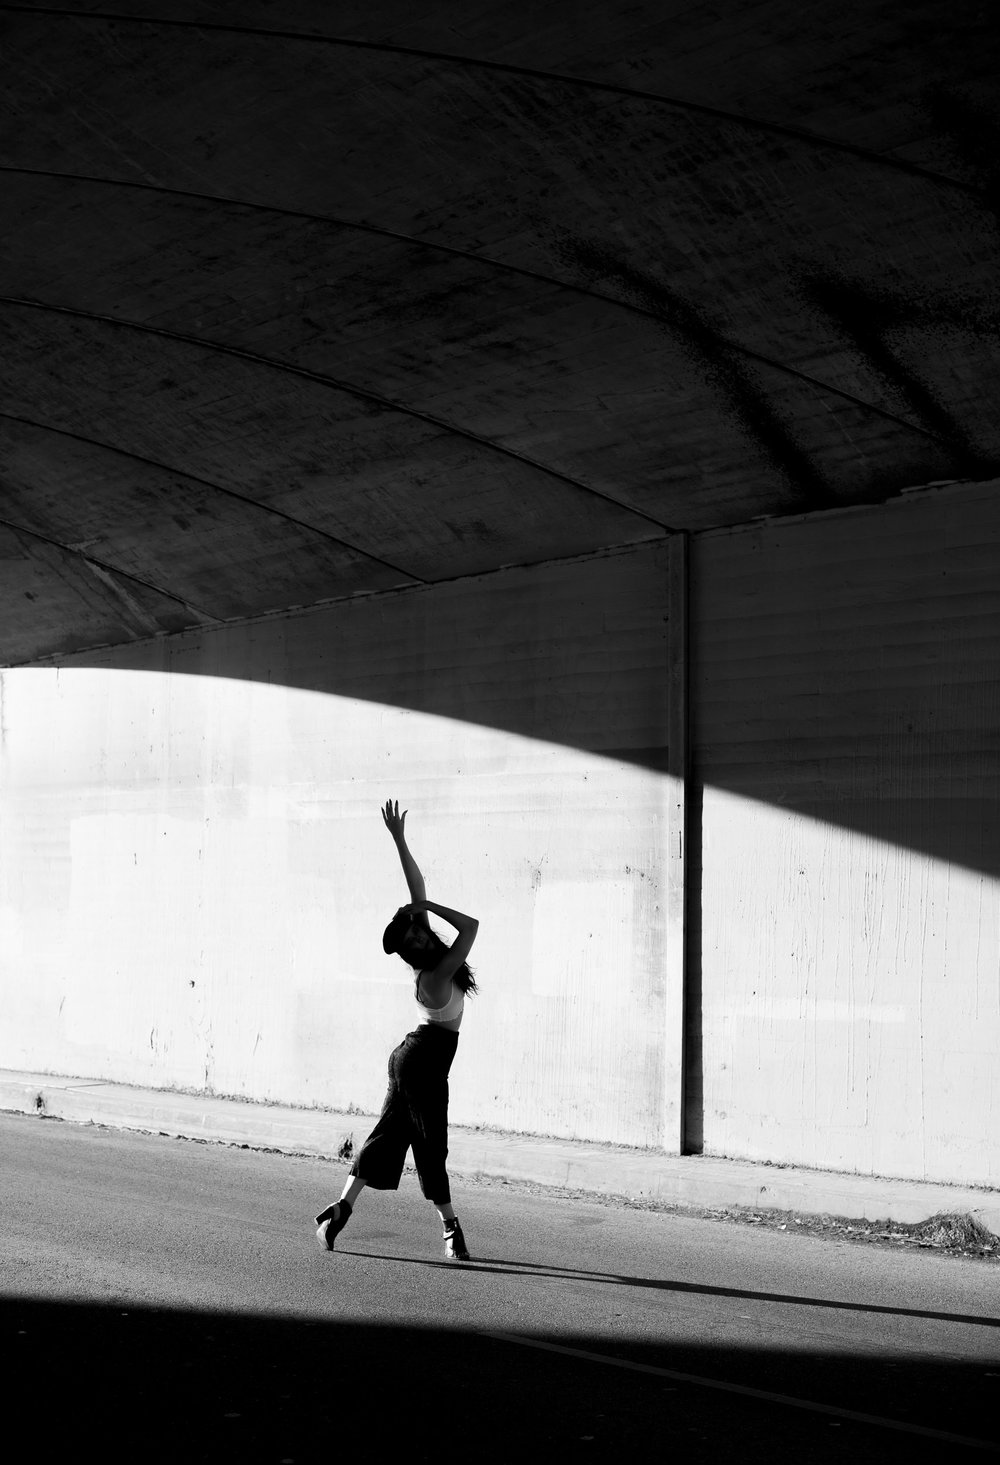 Dancer Justine Lutz choreographer Los Angeles photographer Ashley Barker female stunning images movement b&w shadow silouette